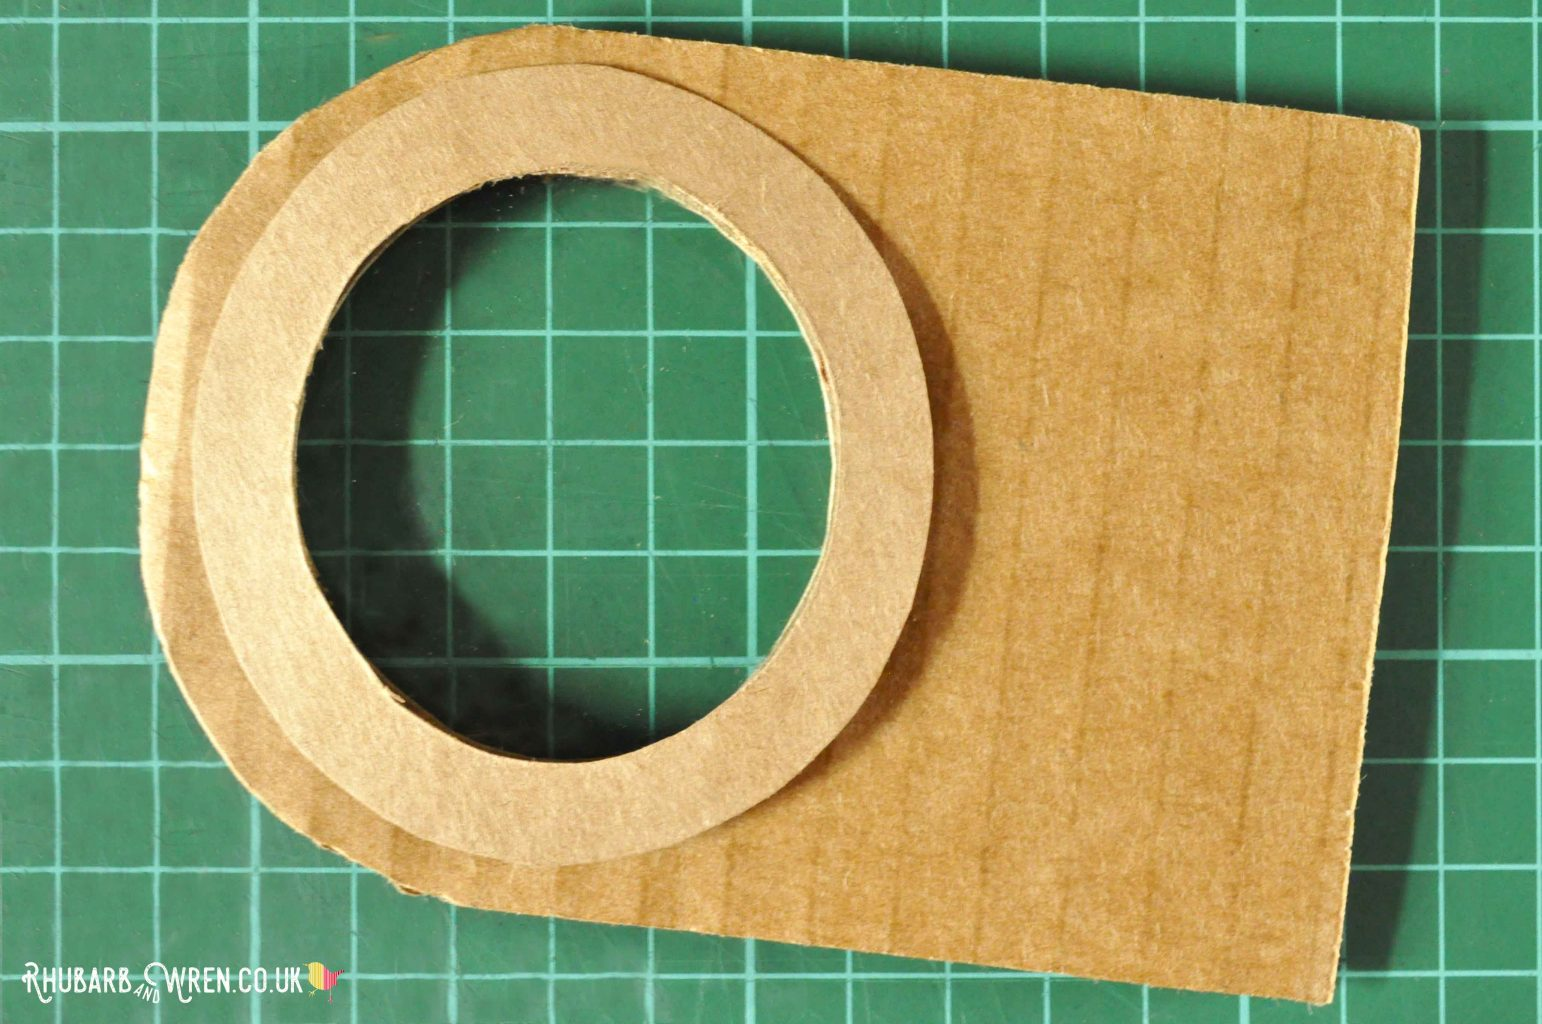 Adding a frame around the lens in a diy real magnifying glass.